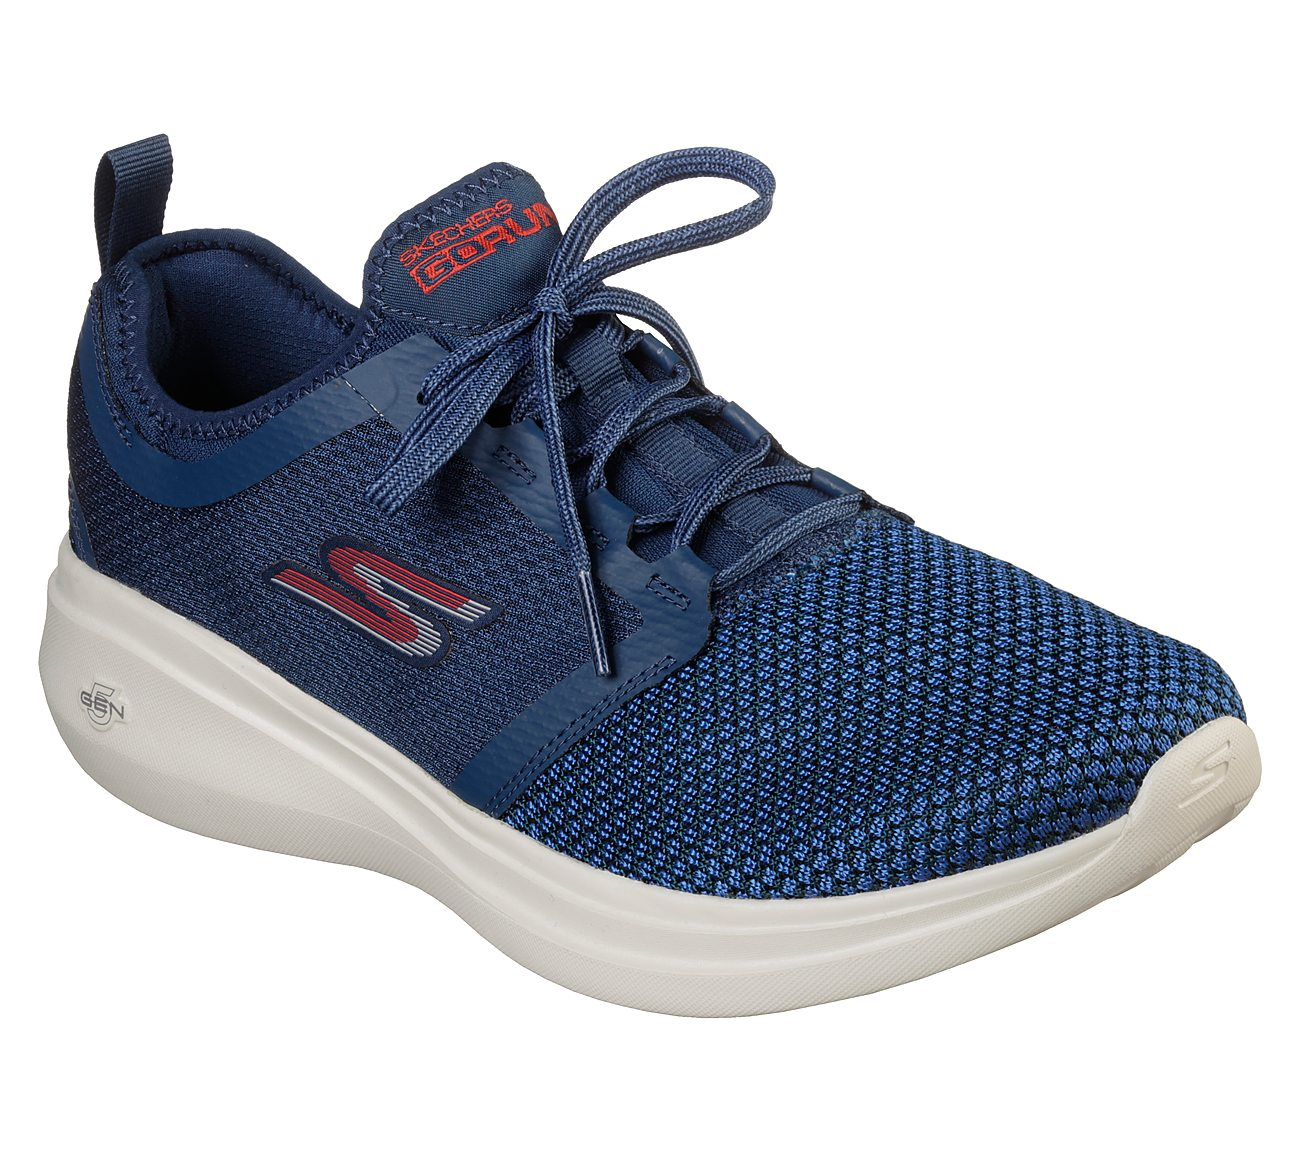 Skechers Performance Go Run Fast-Invigorate (Men's) EMSgygX